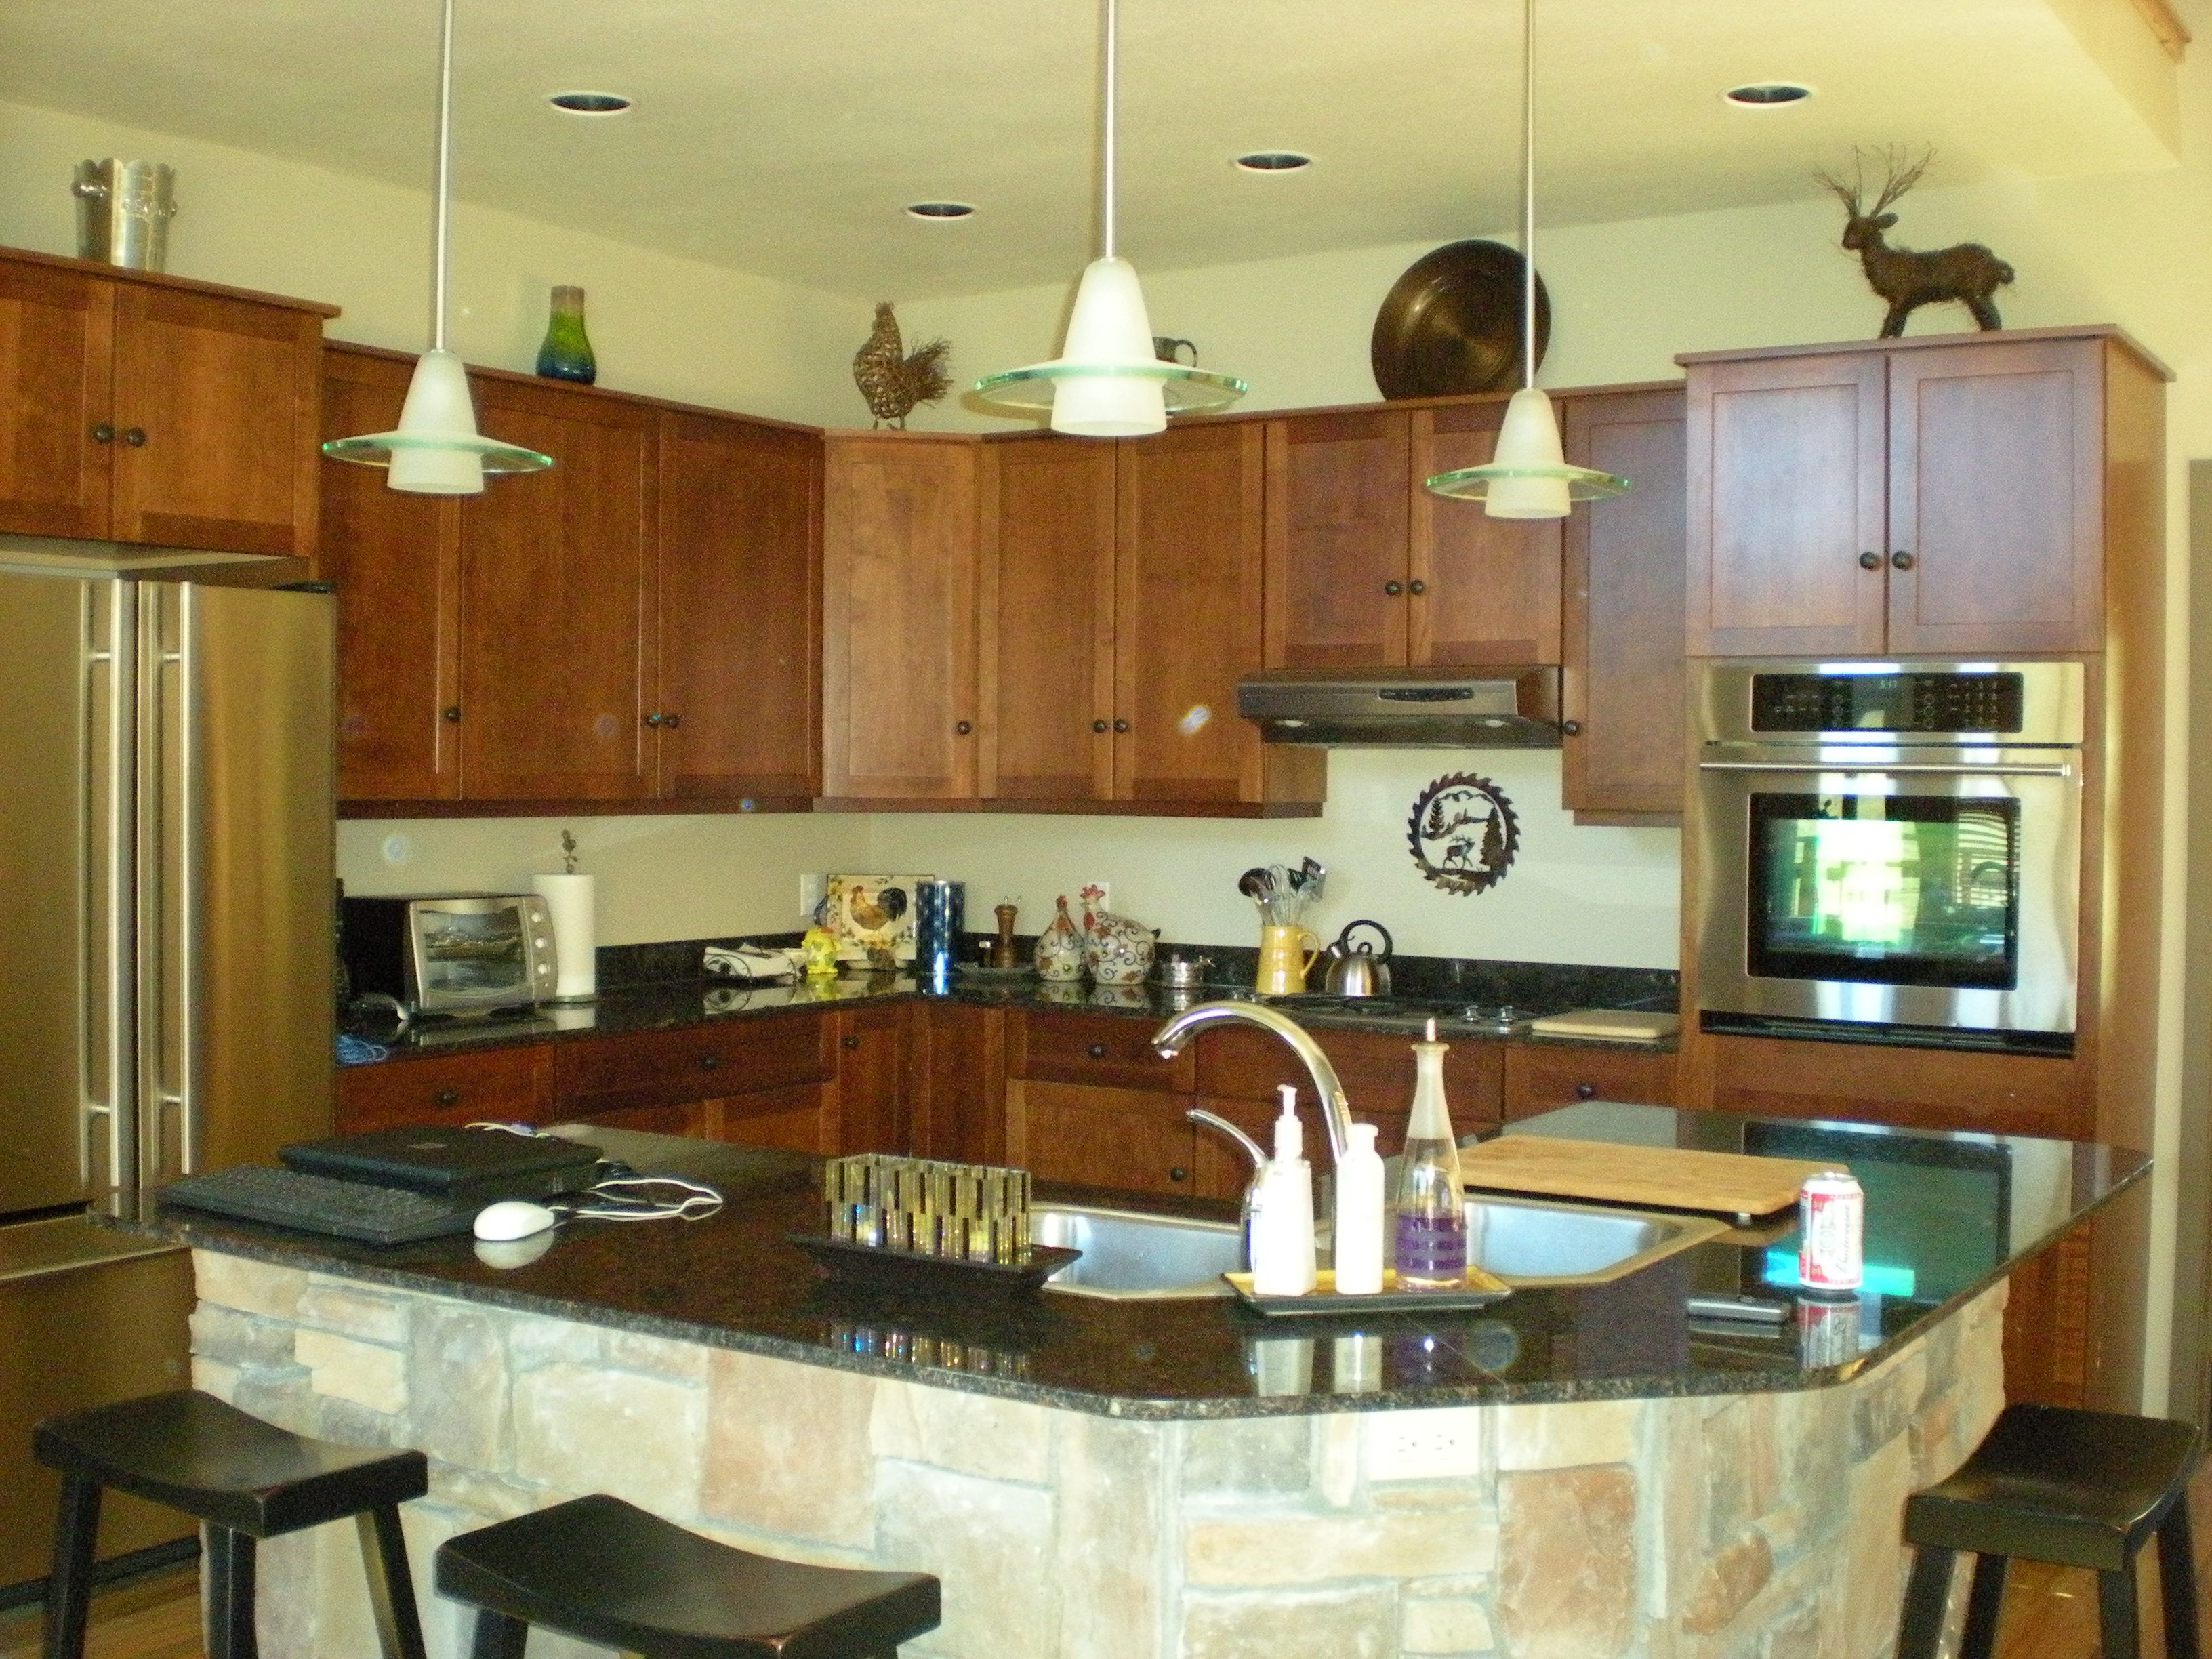 Kitchen Island With Sink Of Corner Pantry And In Floor